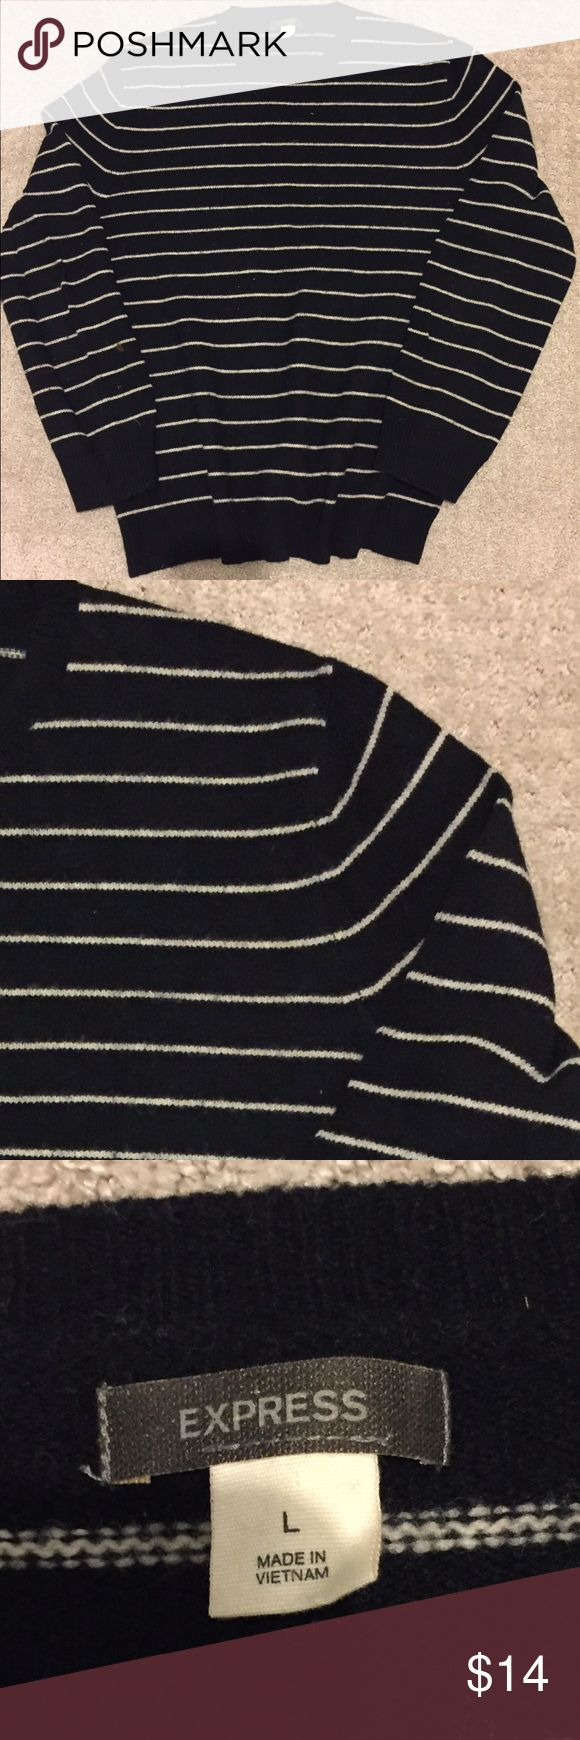 Express wool sweater Mens wool black with white stripe wool sweater Express Sweaters Crewneck